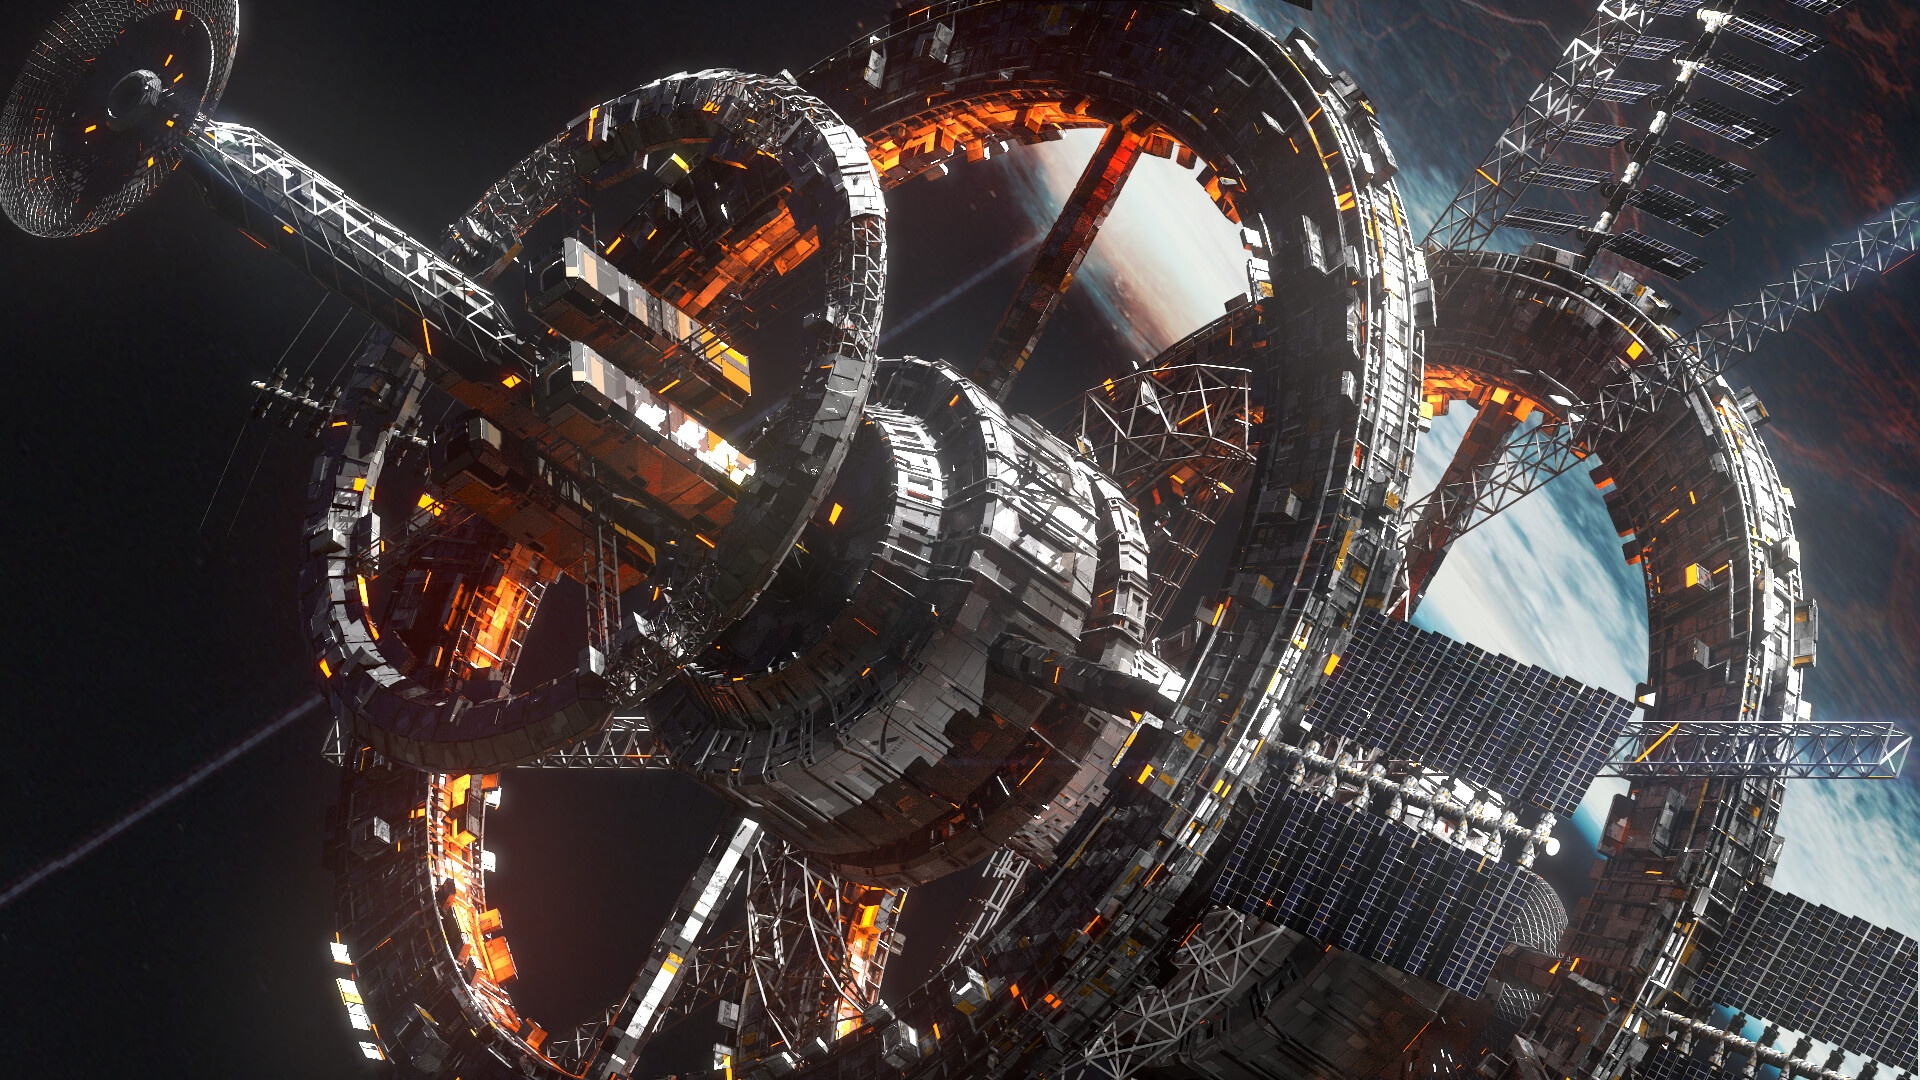 Space Station best background